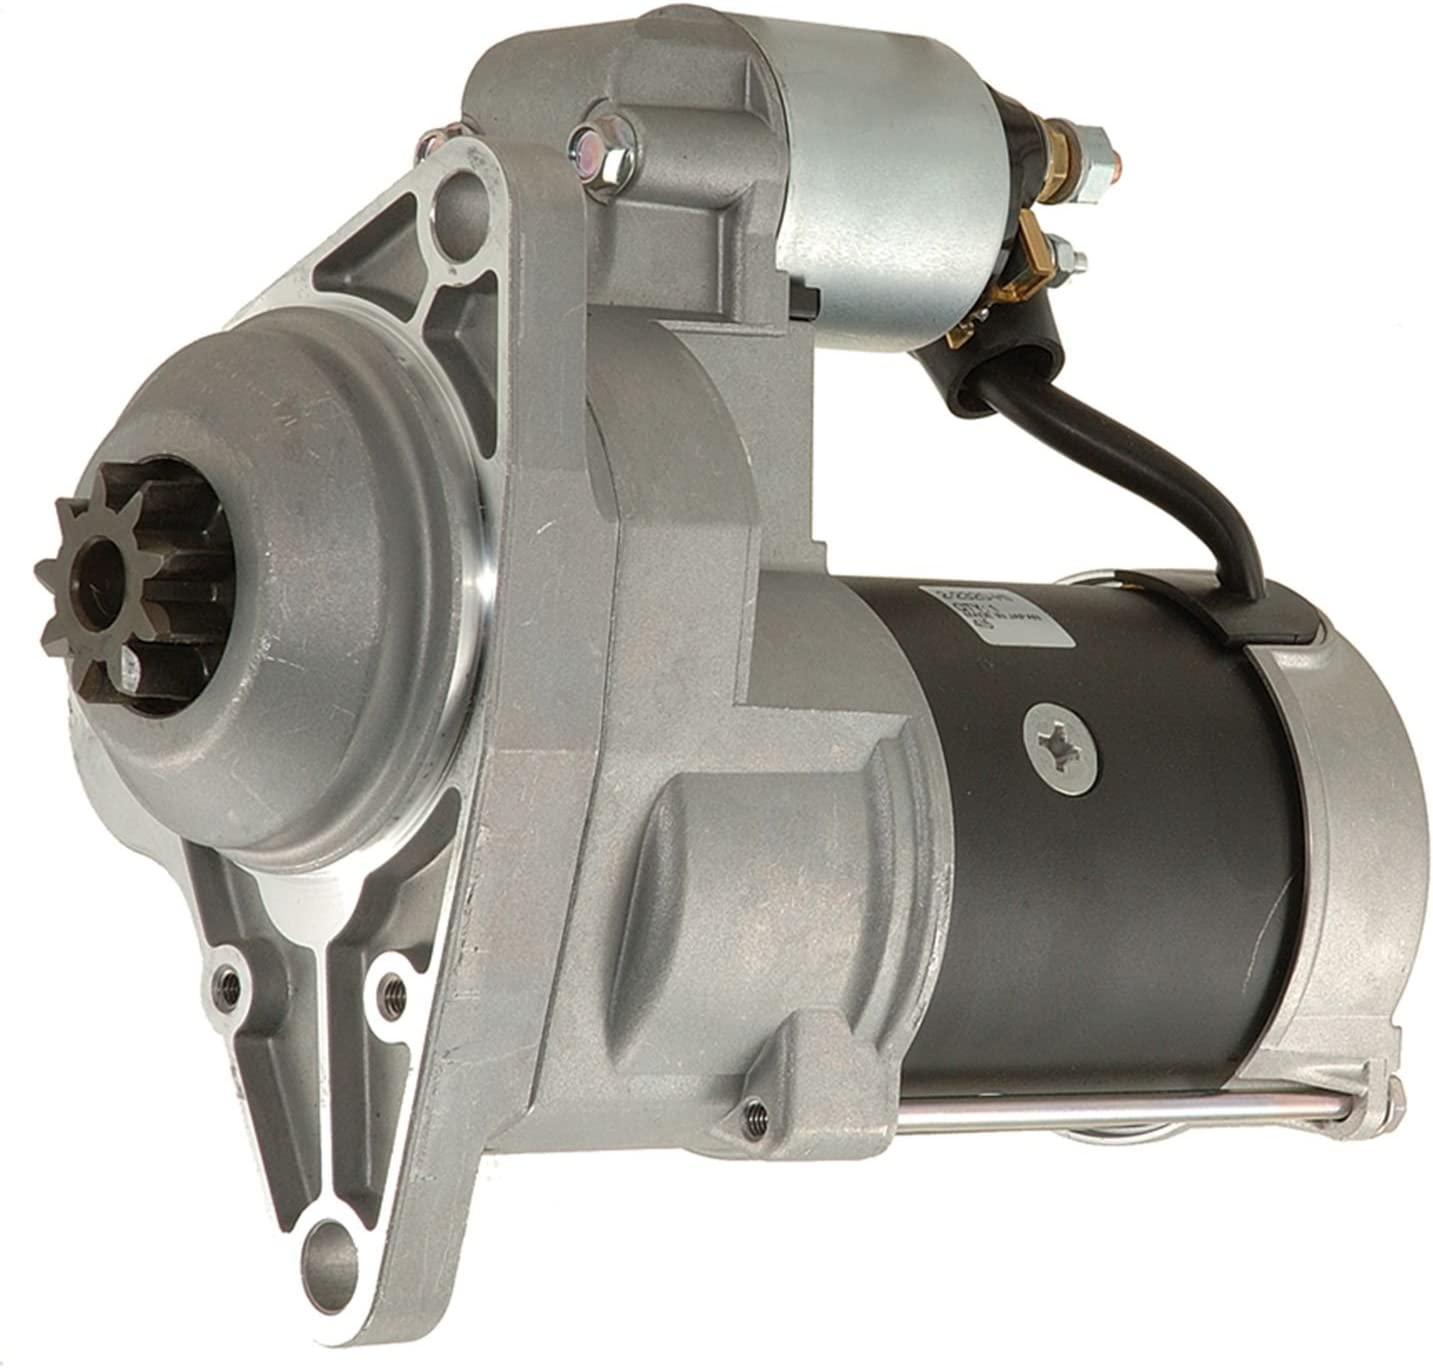 ACDelco 337-1123 Professional Starter